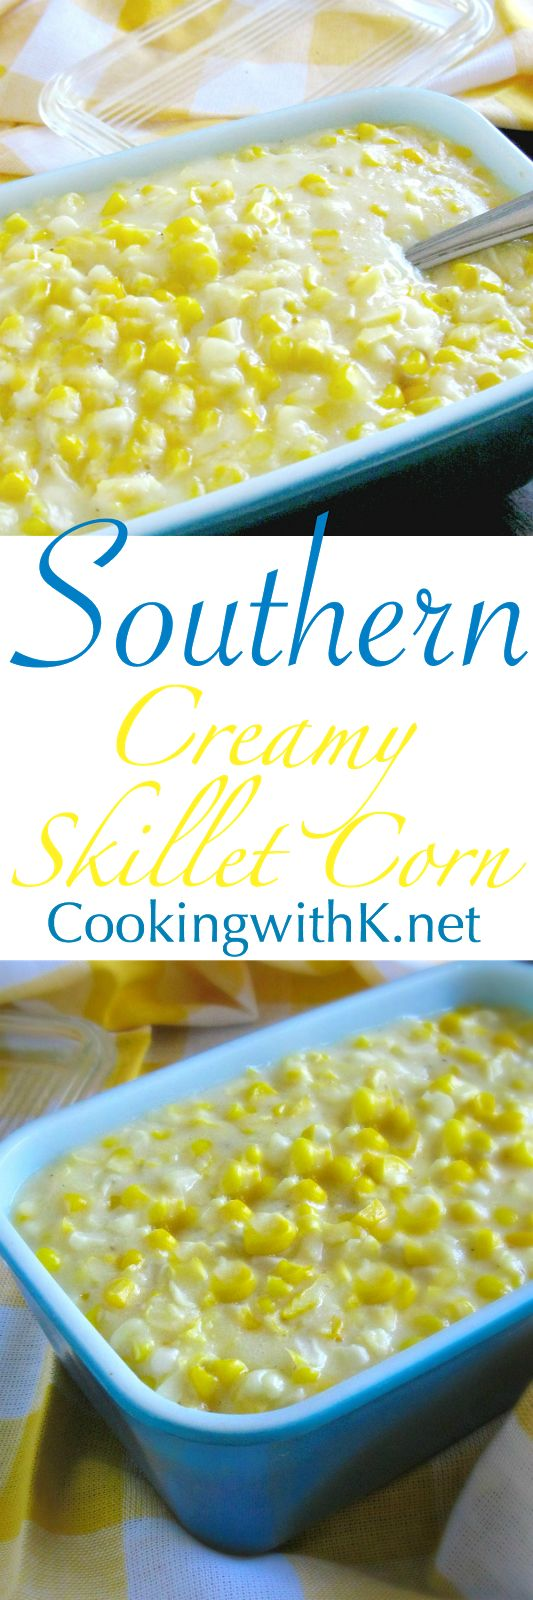 Creamy Skillet Corn is super simple to make with few ingredients and is a great side dish at any gathering.  An extraordinary fresh corn dish that is creamy with a surprising crispiness.